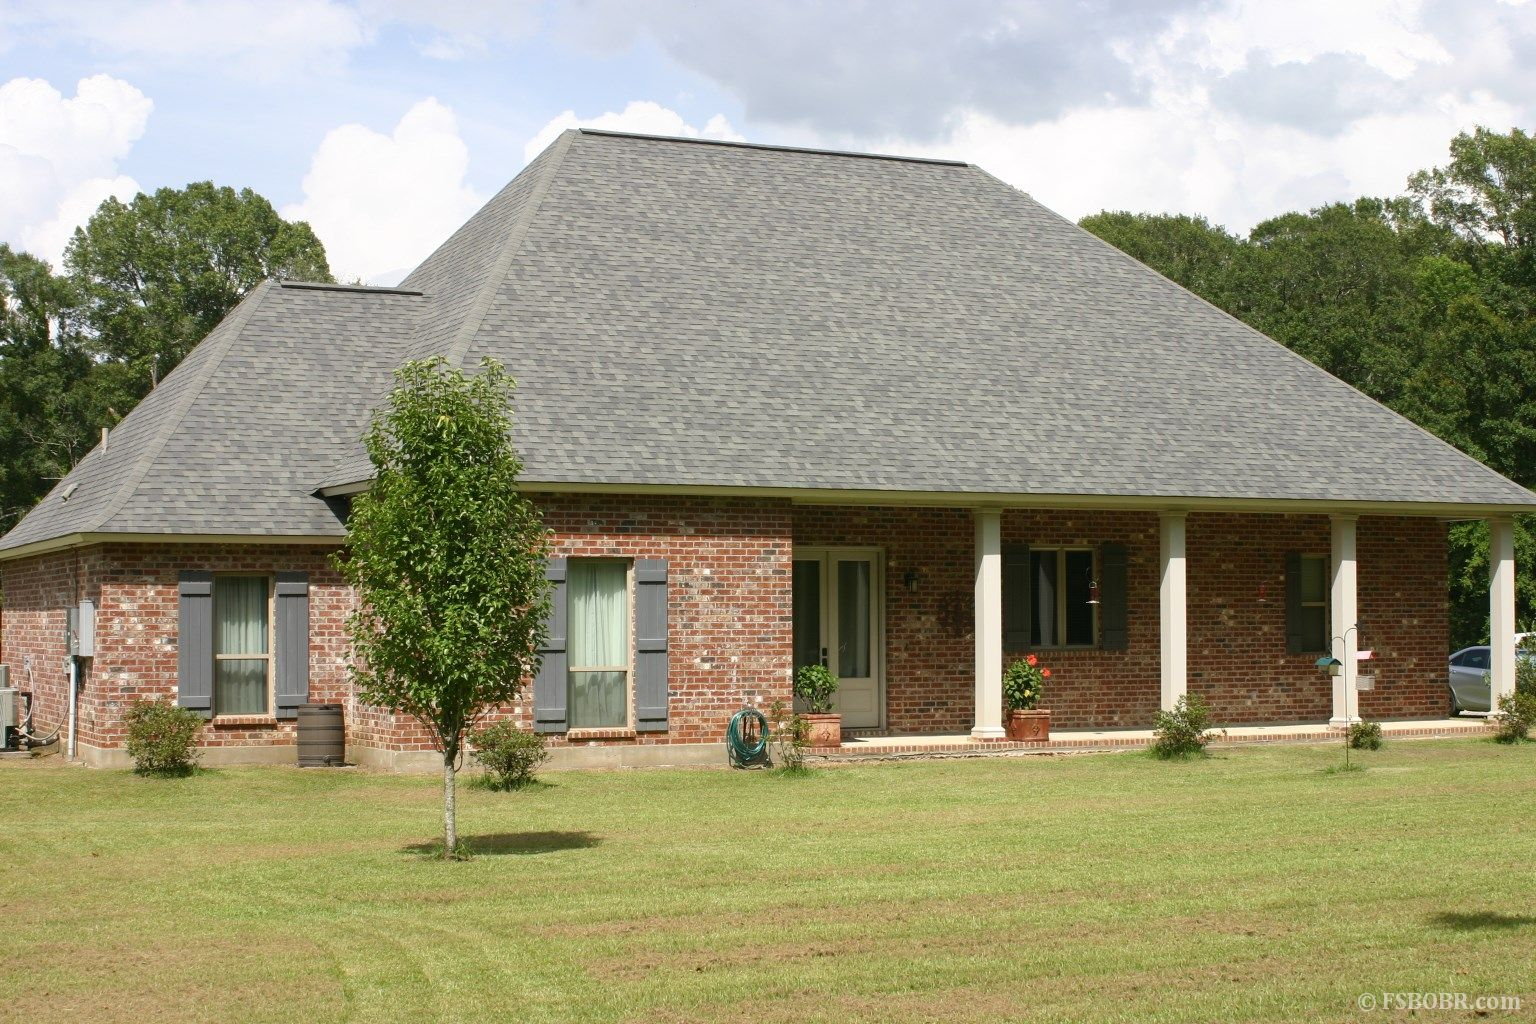 Acreage For Sale By Owner >> Custom Built Home With Pond And Acreage Motivated To Sell